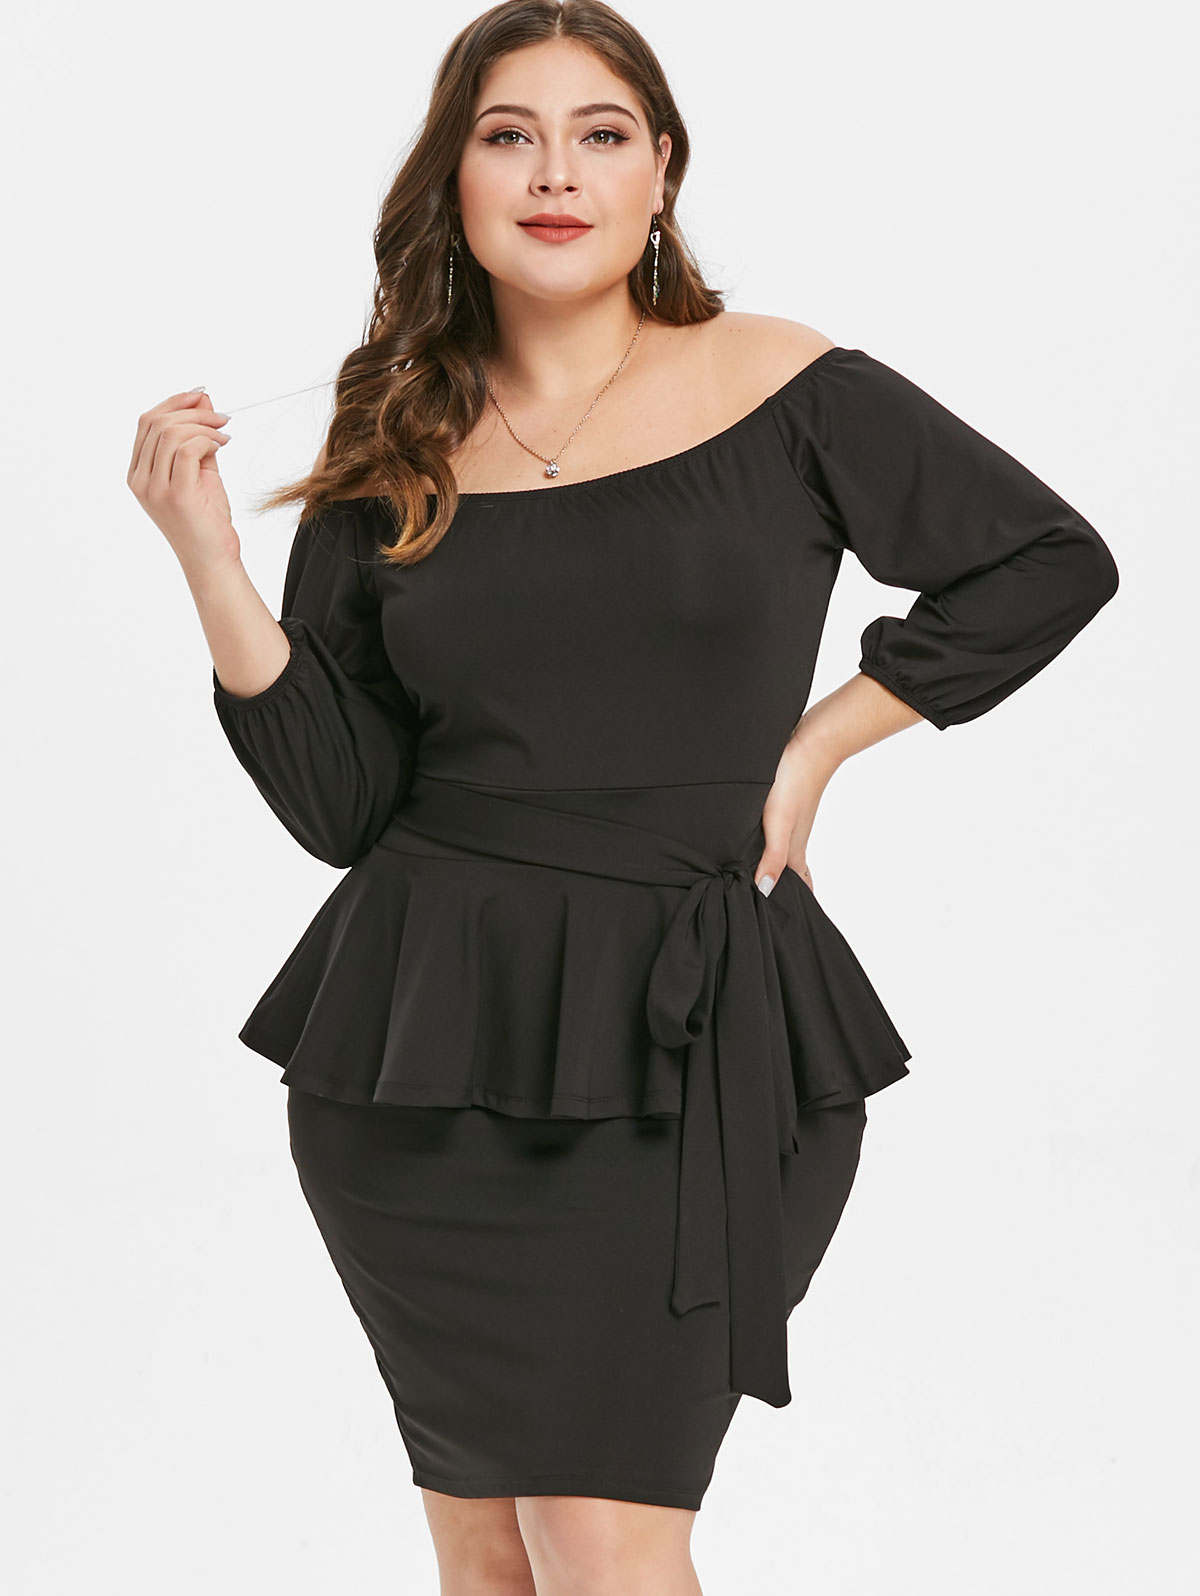 Detail Feedback Questions about Wipalo Plus Size Off The Shoulder 3 4  Sleeves Belted Peplum Dress Women Clothing Winter Spring Black Bodycon Dress  Vestidos ... 05a6941ba3f7